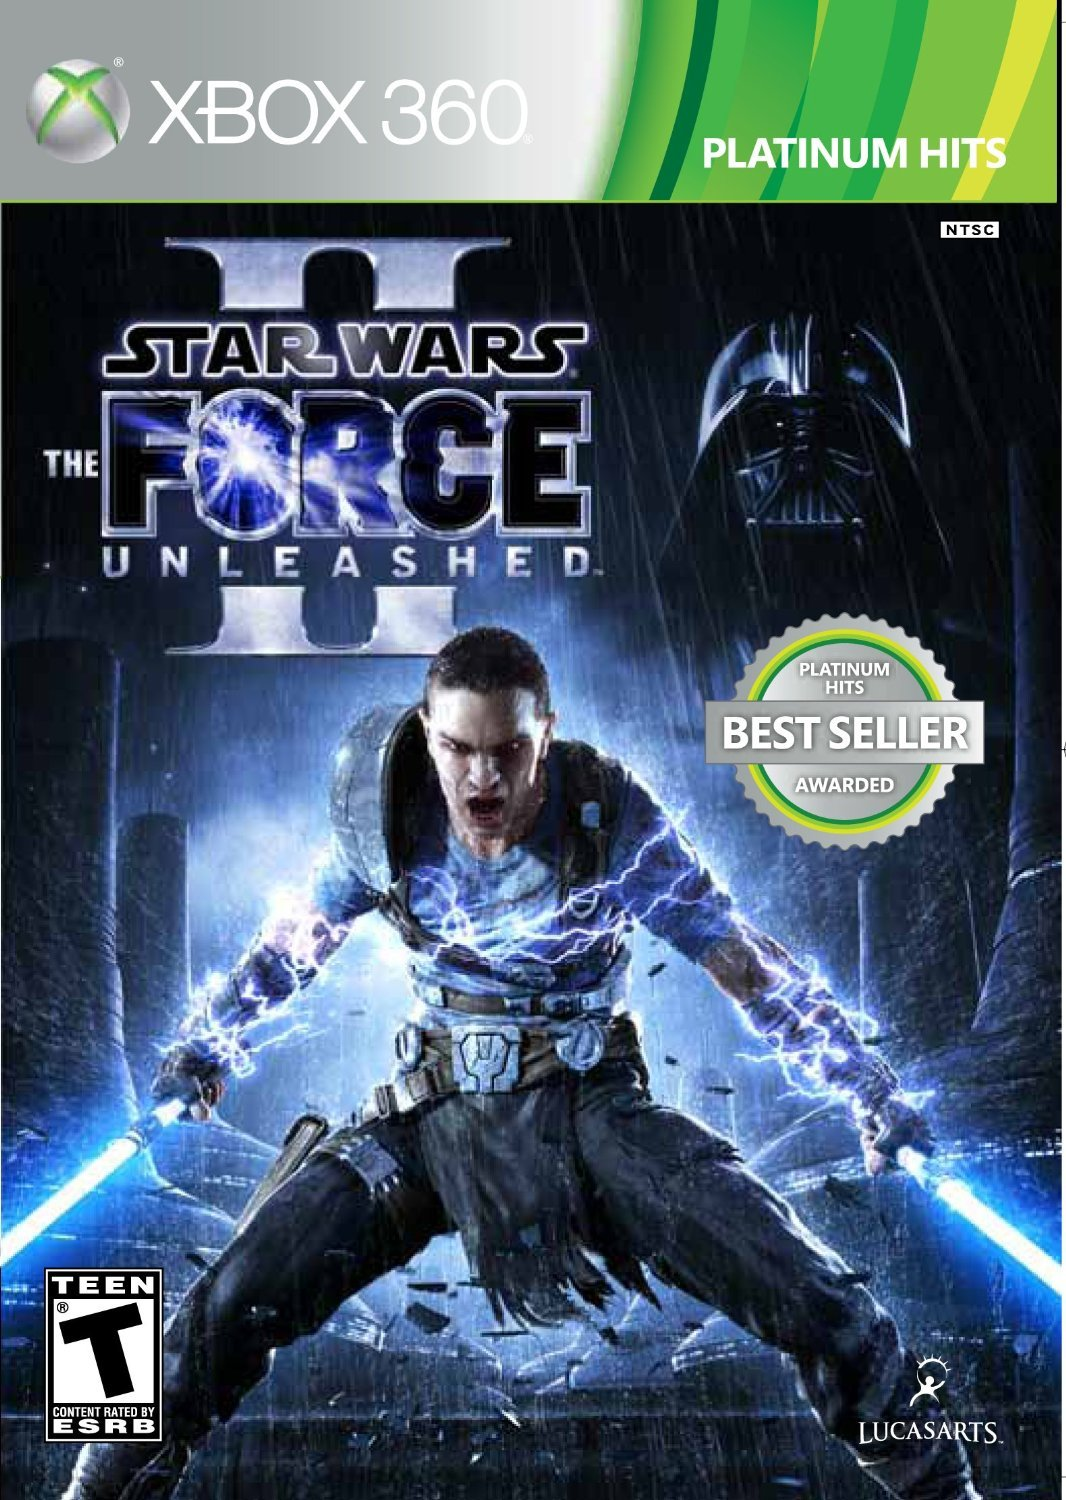 Star Wars: The Force Unleashed 2021new shipping free shipping Super intense SALE II Platinum 360 - Xbox edition